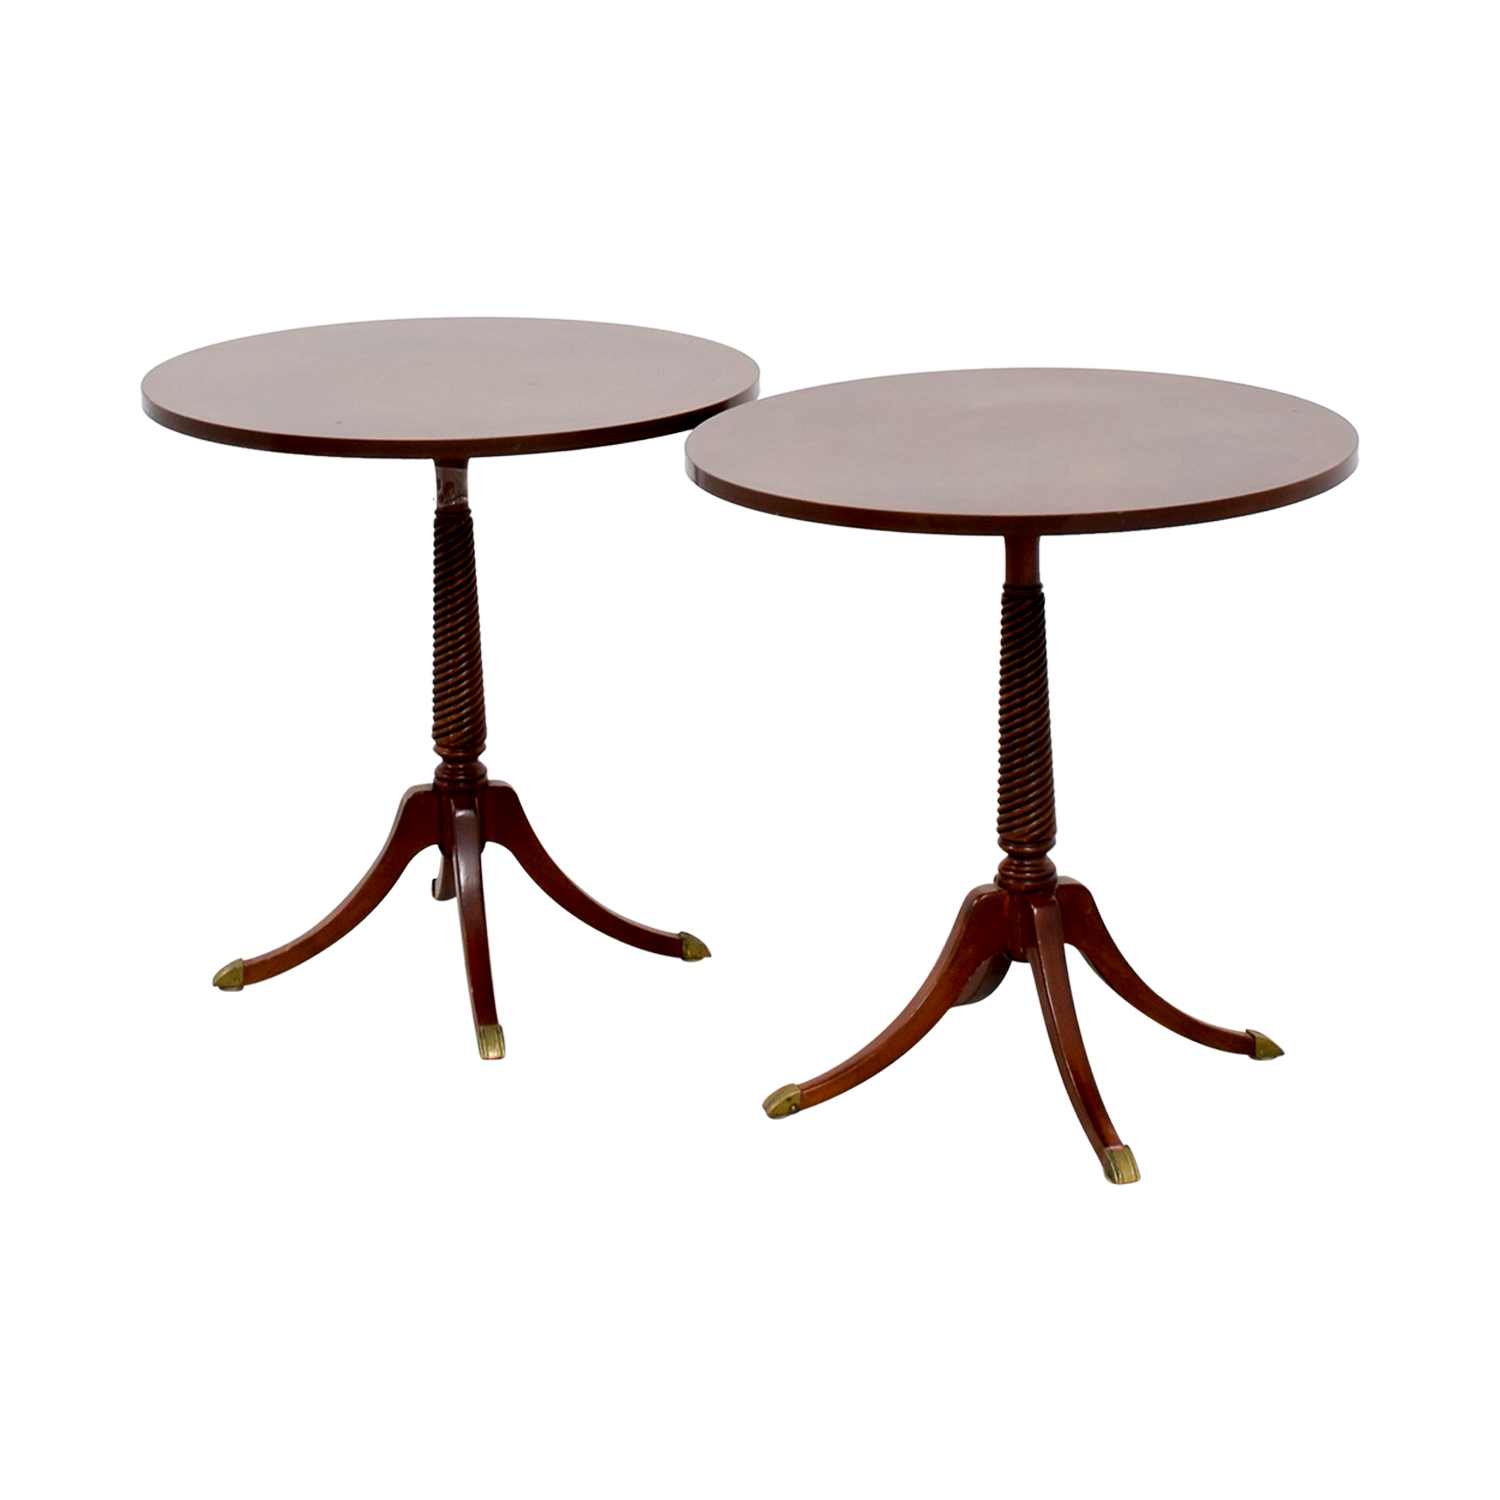 Furniture Masters Furniture Masters Round Wood End Tables End Tables